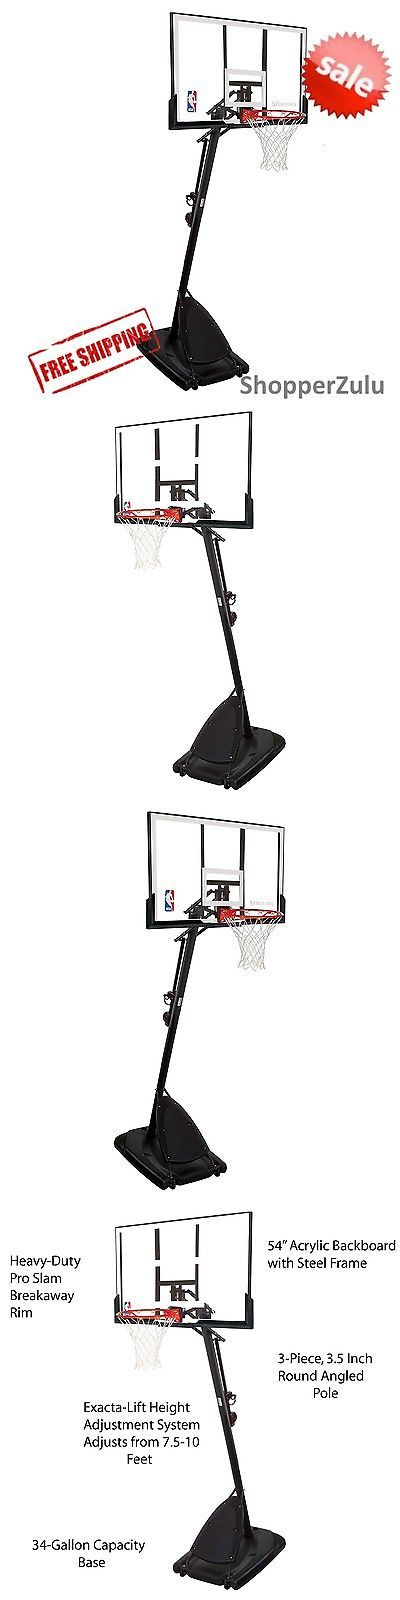 Backboard Systems 21196: Spalding 54 Portable Basketball System Adjustable Hoop Backboard Net Pole 66291 -> BUY IT NOW ONLY: $230.35 on eBay!